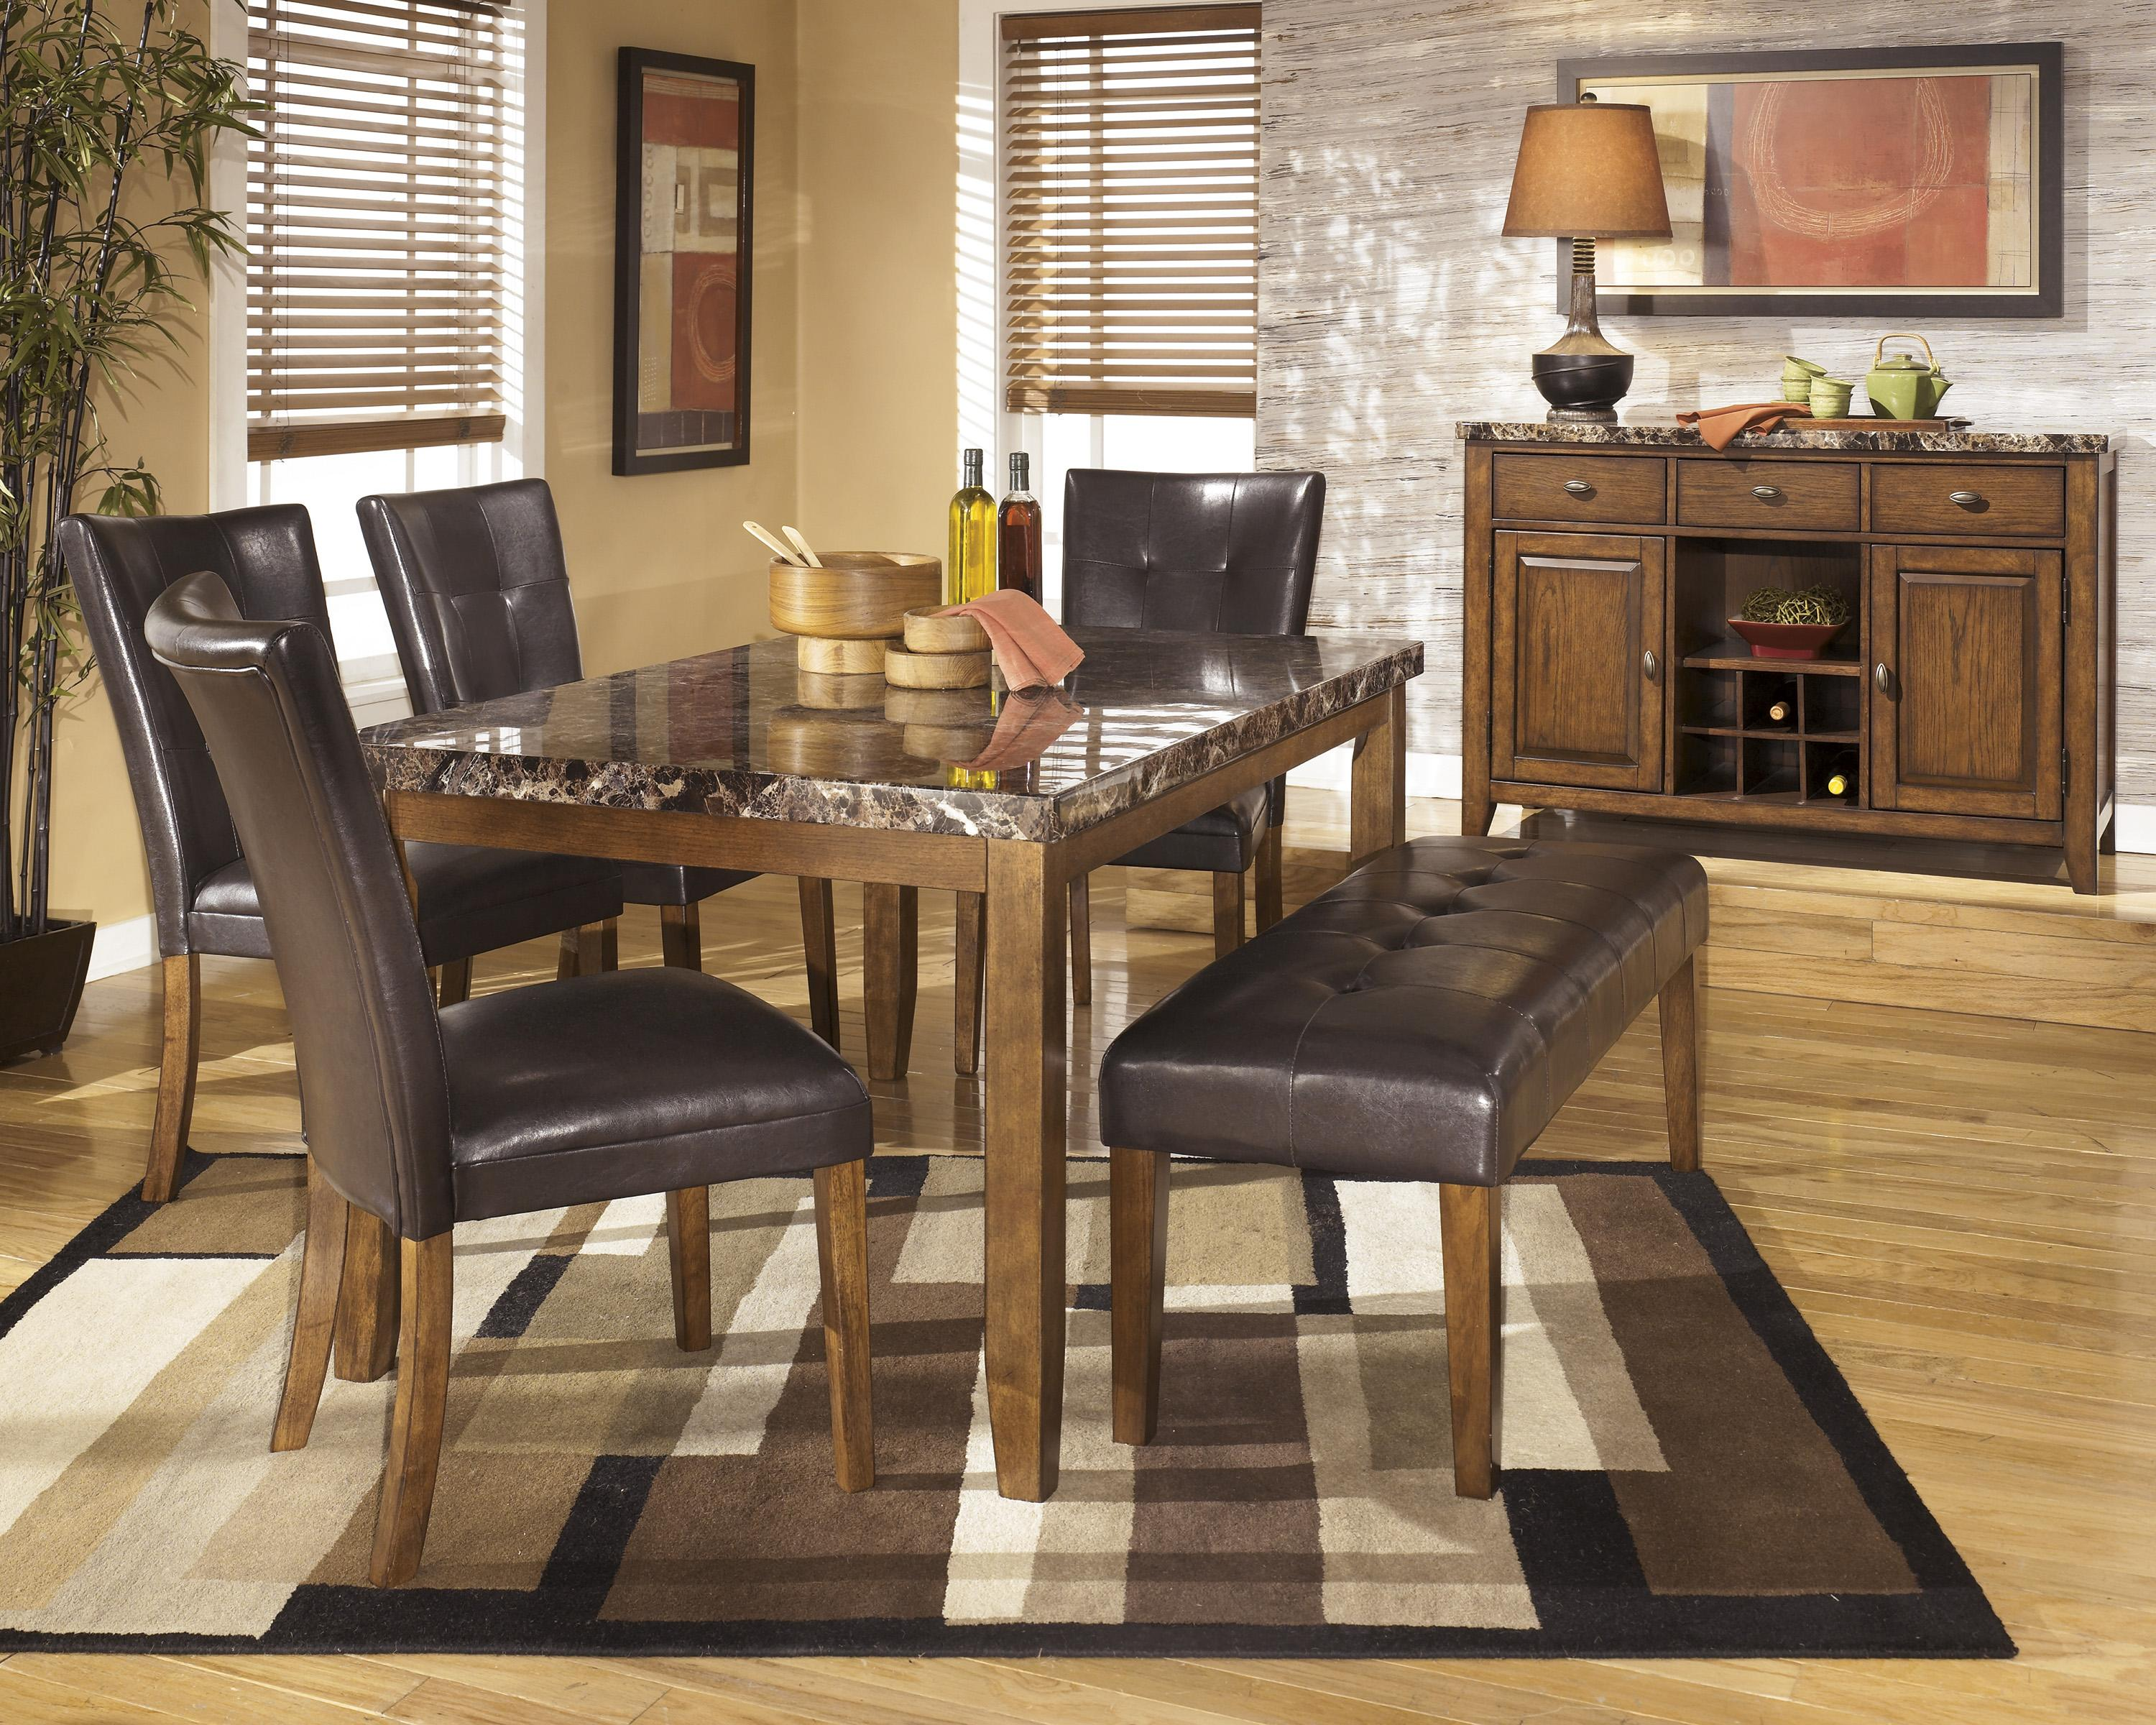 Signature Design by Ashley Lacey Casual Dining Room Group - Item Number: D328 Dining Room Group 3